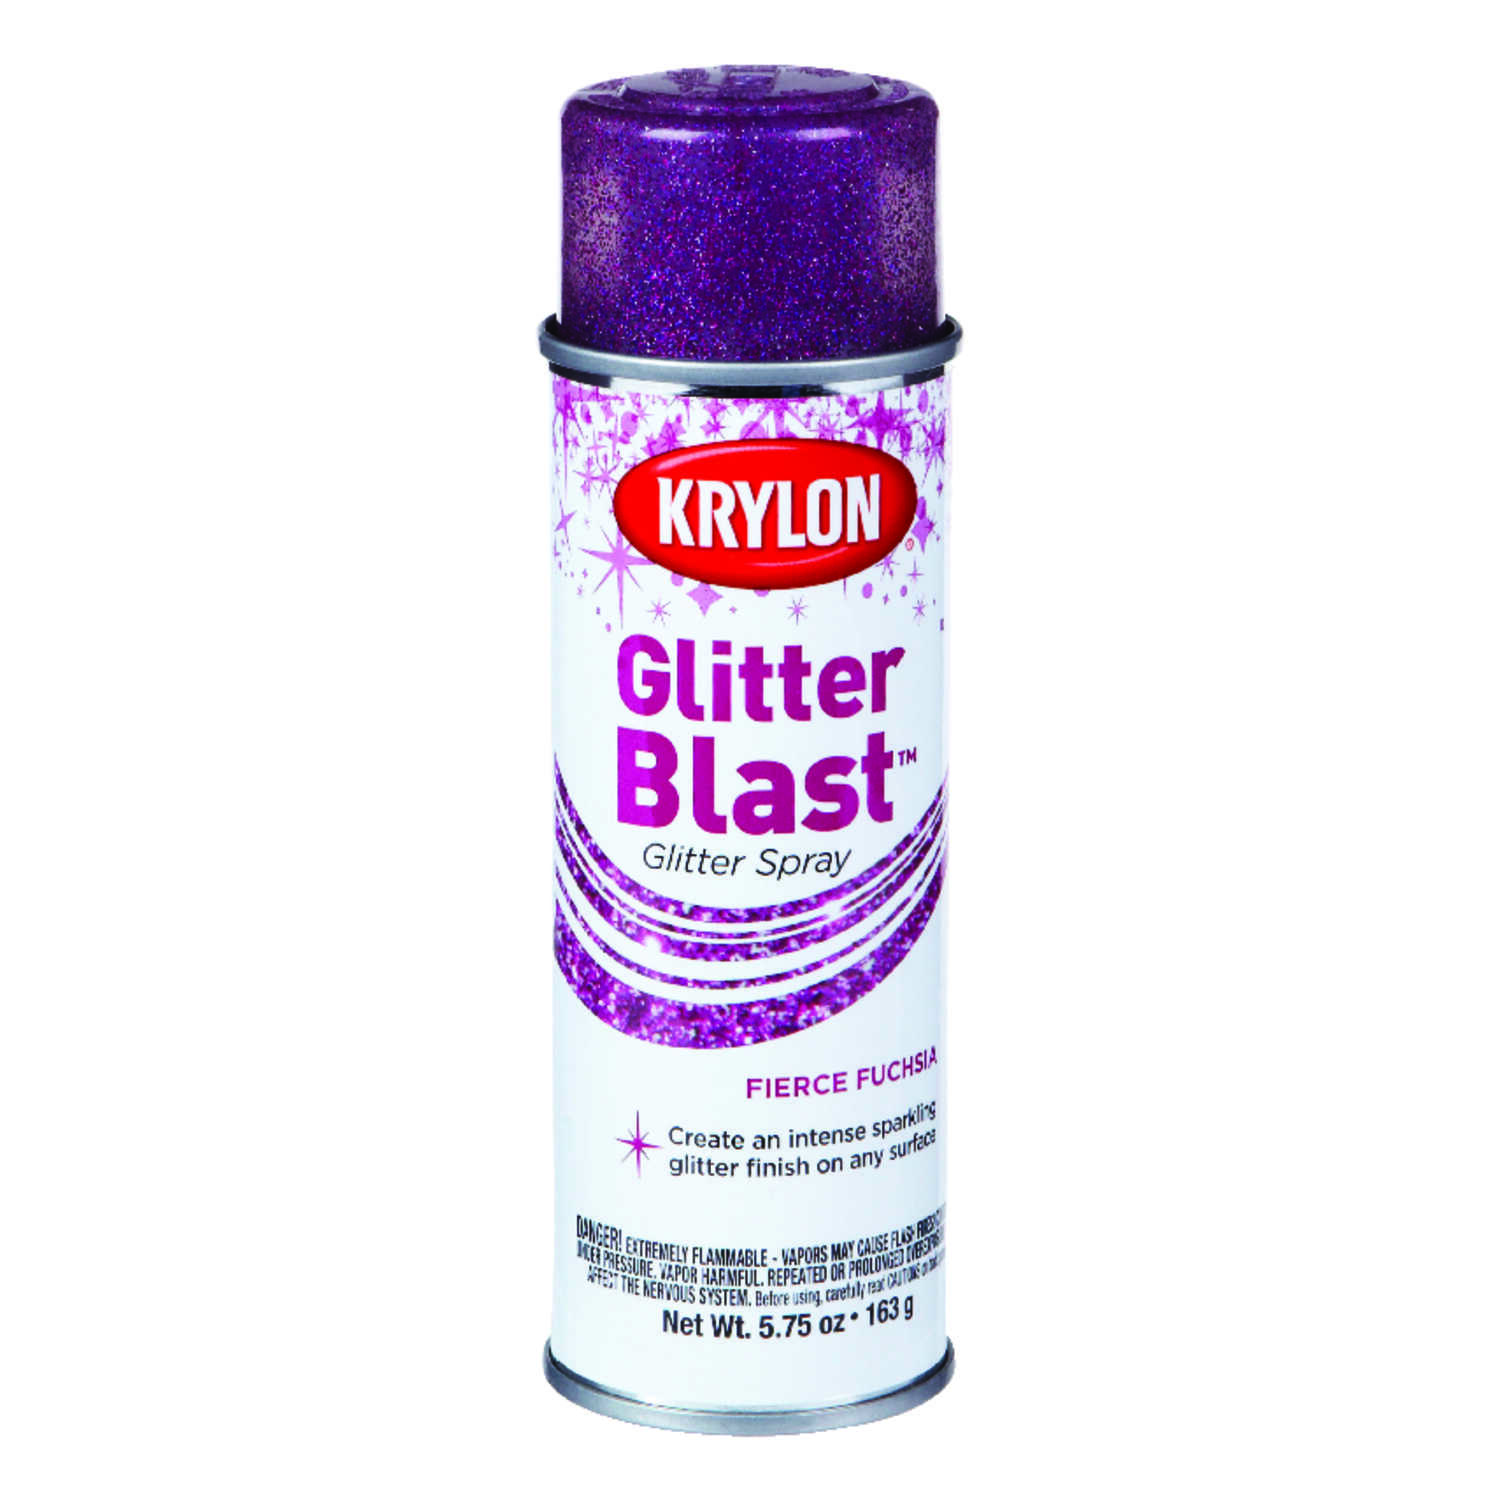 Krylon  Glitter Blast Spray Paint  5.75 oz. Fierce Fuchsia